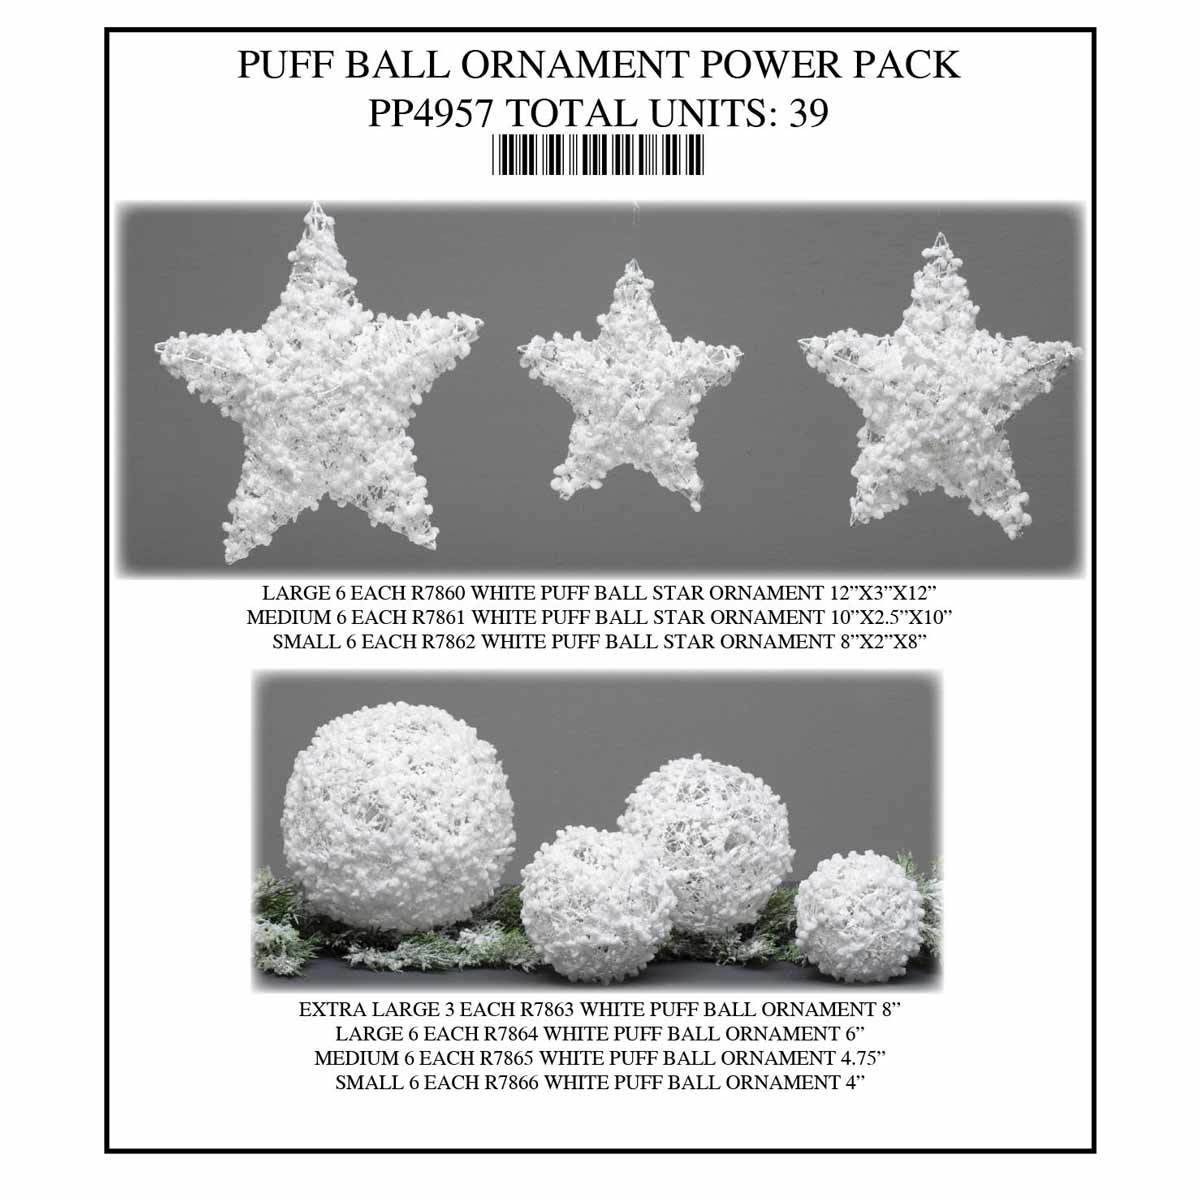 PUFF BALL ORNAMENT POWER PACK 39 UNITS